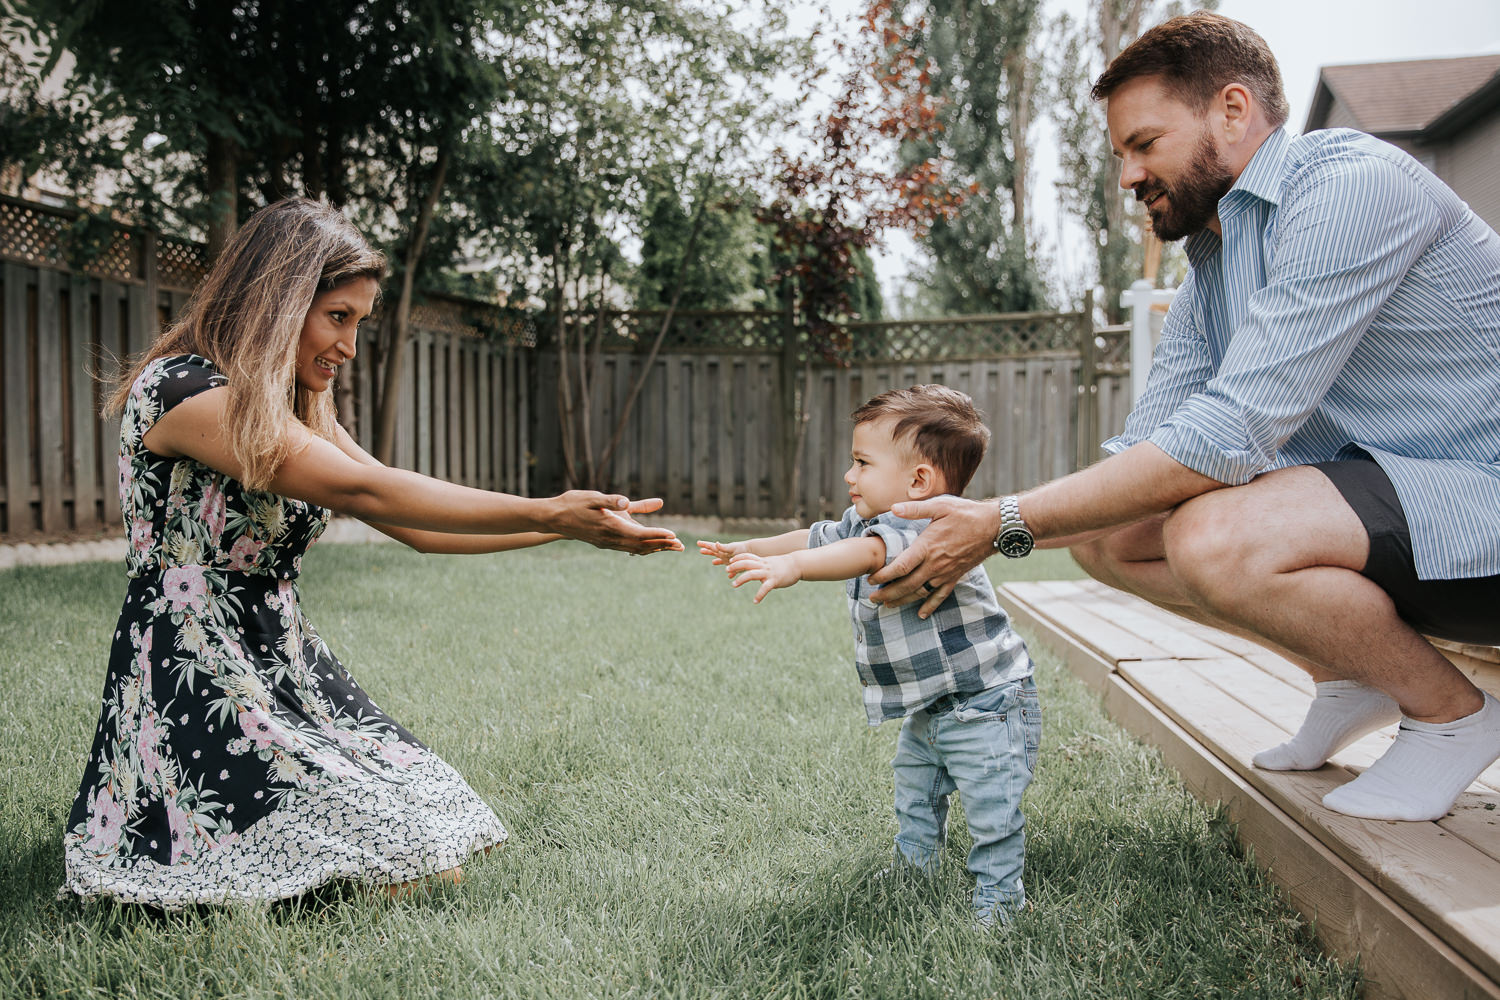 1 year old baby boy with dark hair in white and blue plaid shirt and jeans standing in backyard, supported by dad as mom and son reach out arms to one another, smiling - York Region Lifestyle Photos